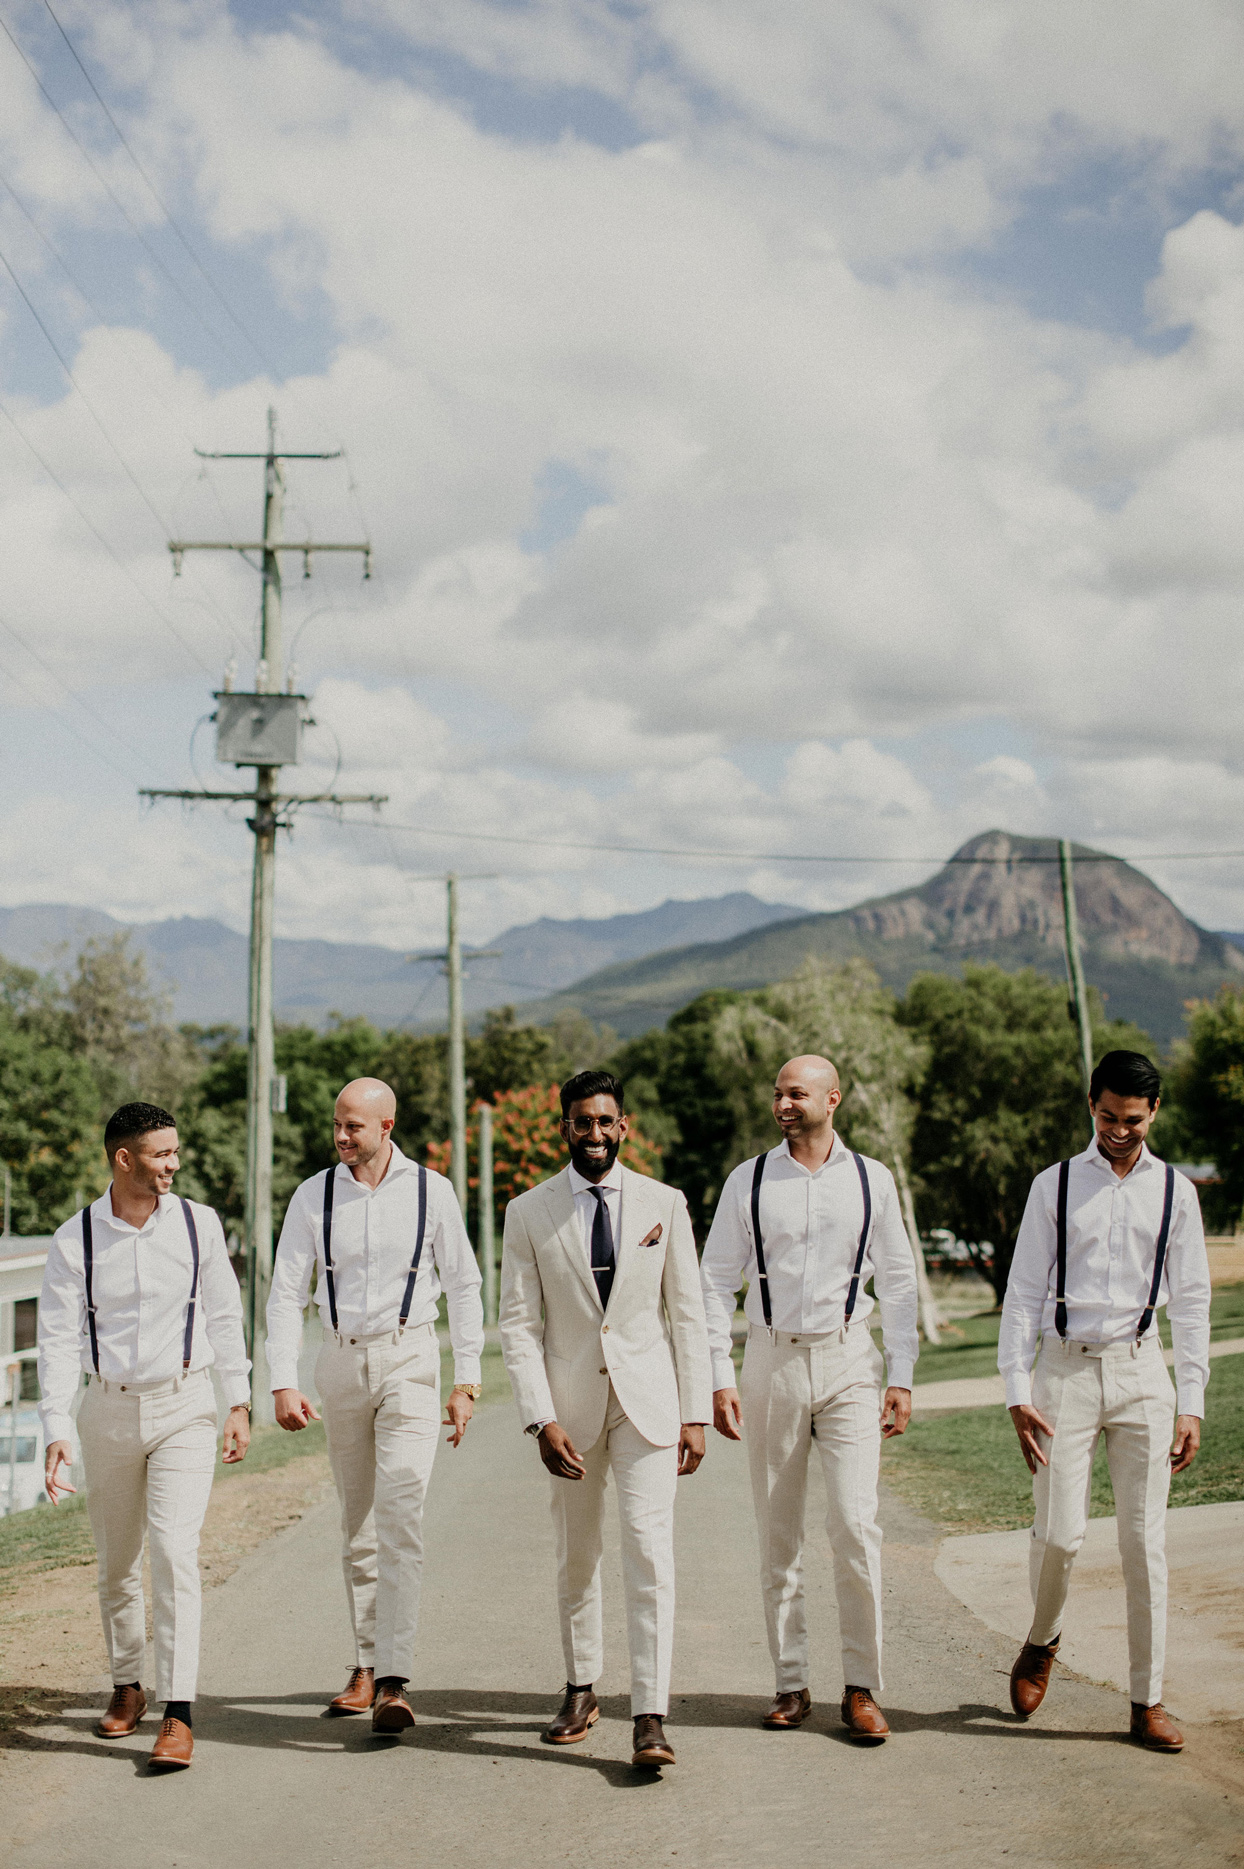 groom walking with groomsmen in white outfits